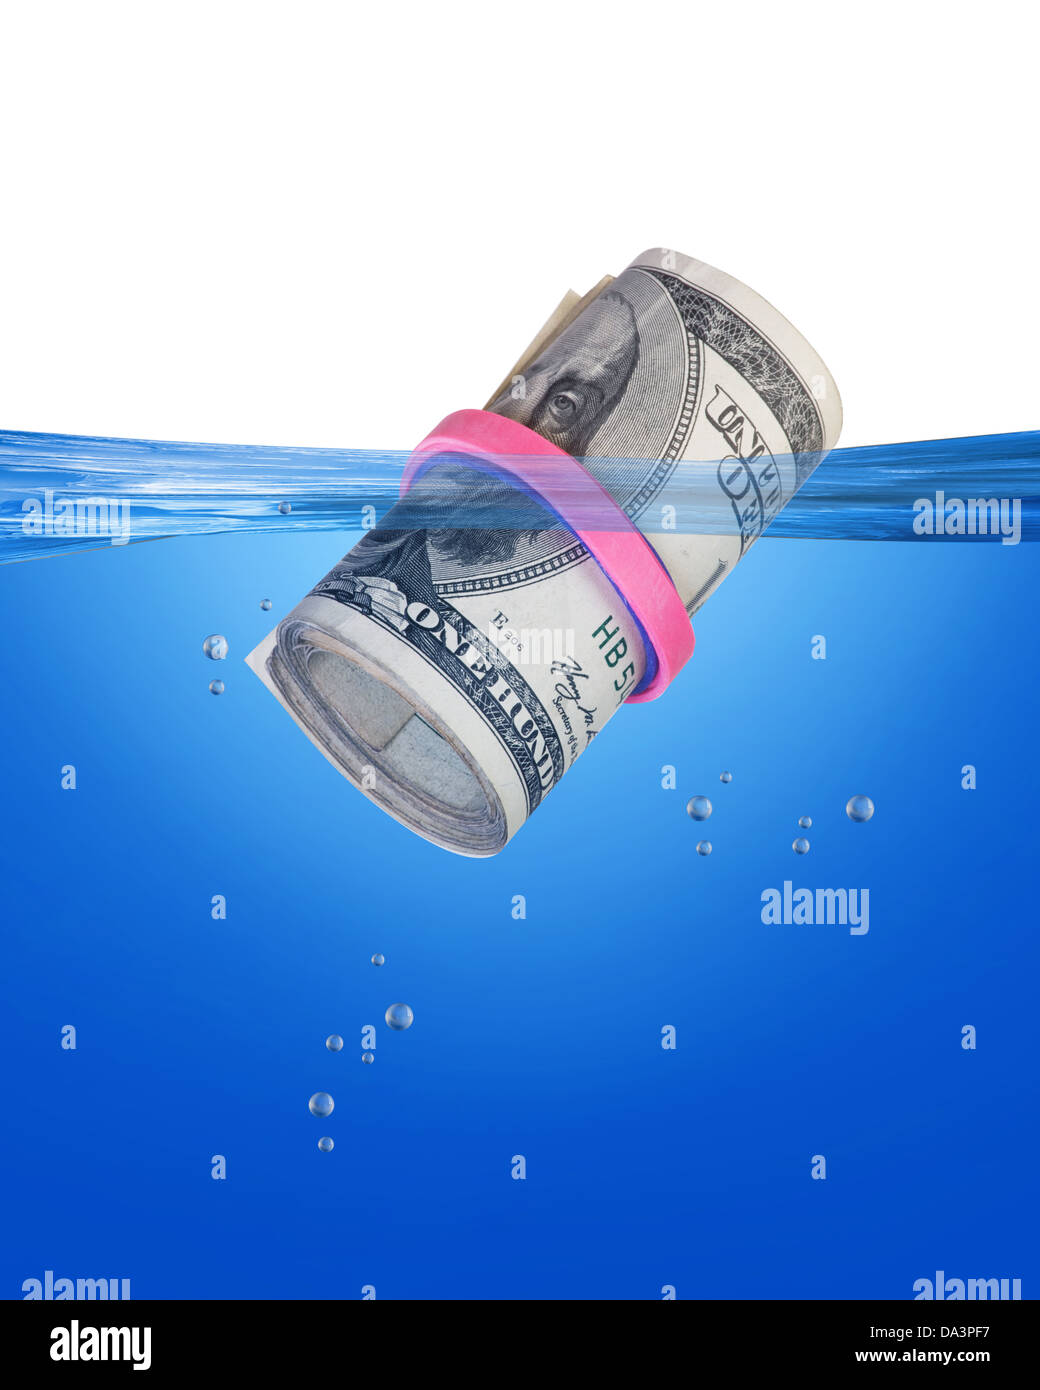 Cash roll floating in blue water. - Stock Image